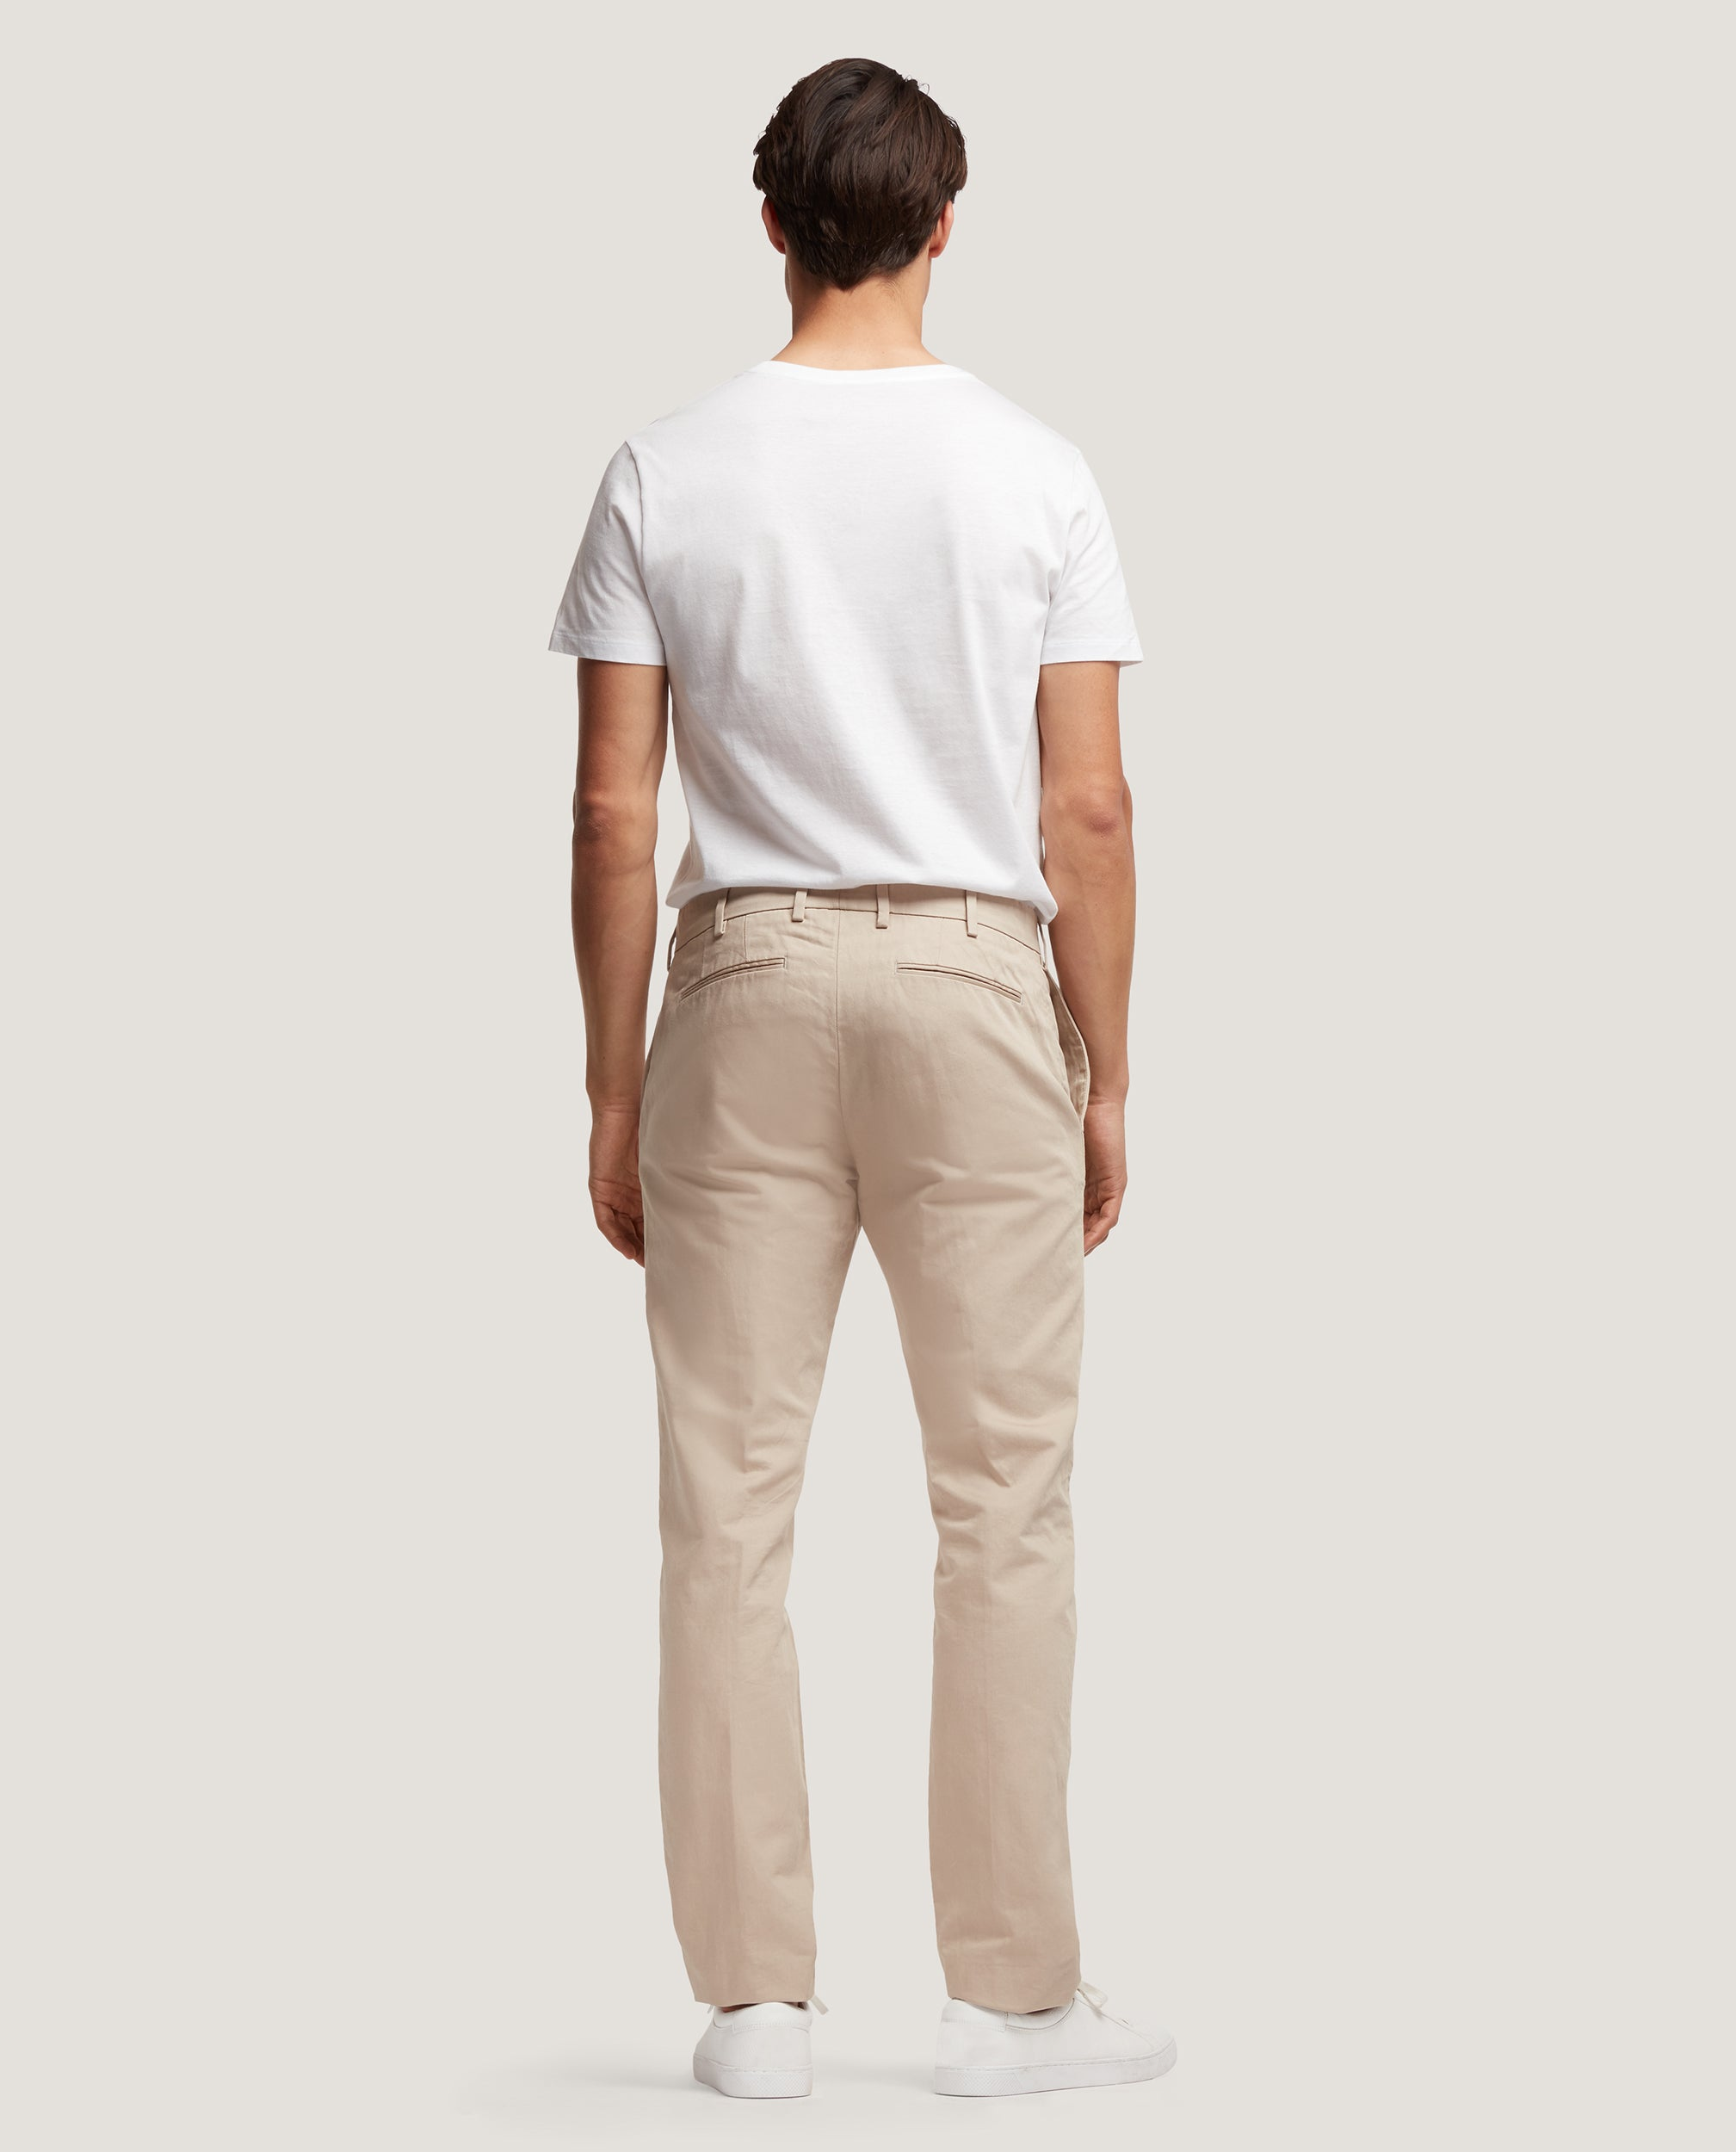 GEHRY Chino trousers | Slim fit | Cotton-linen blend | Sand